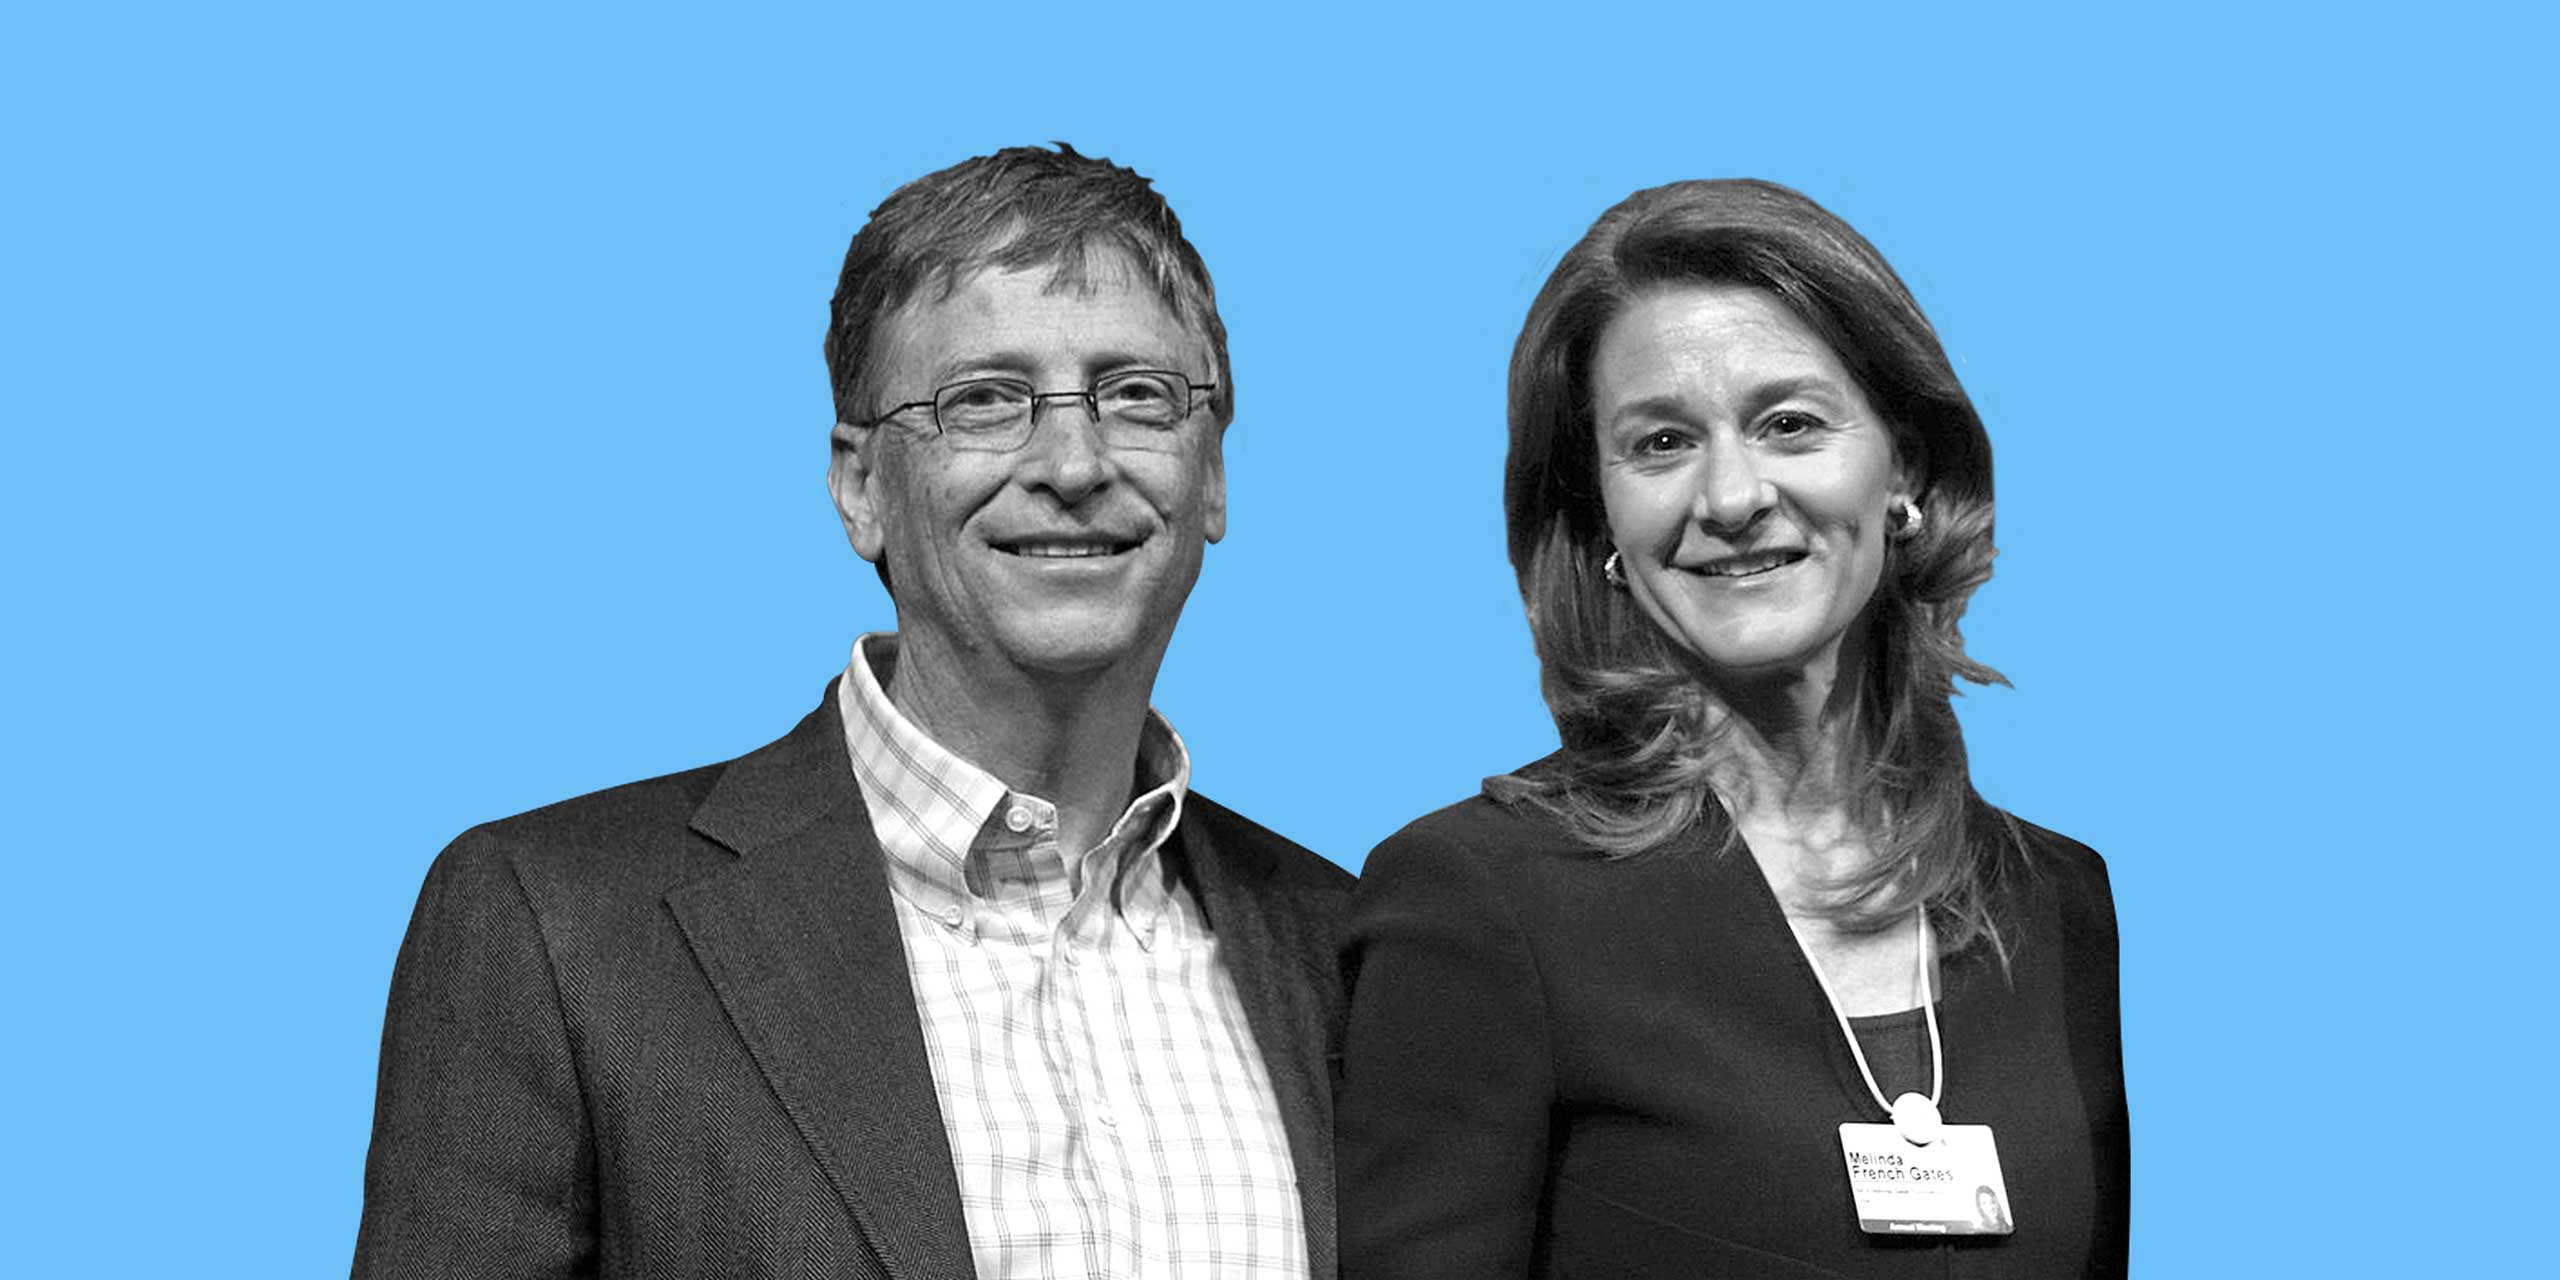 Is College Worth It? Bill and Melinda Gates Want to Find Out